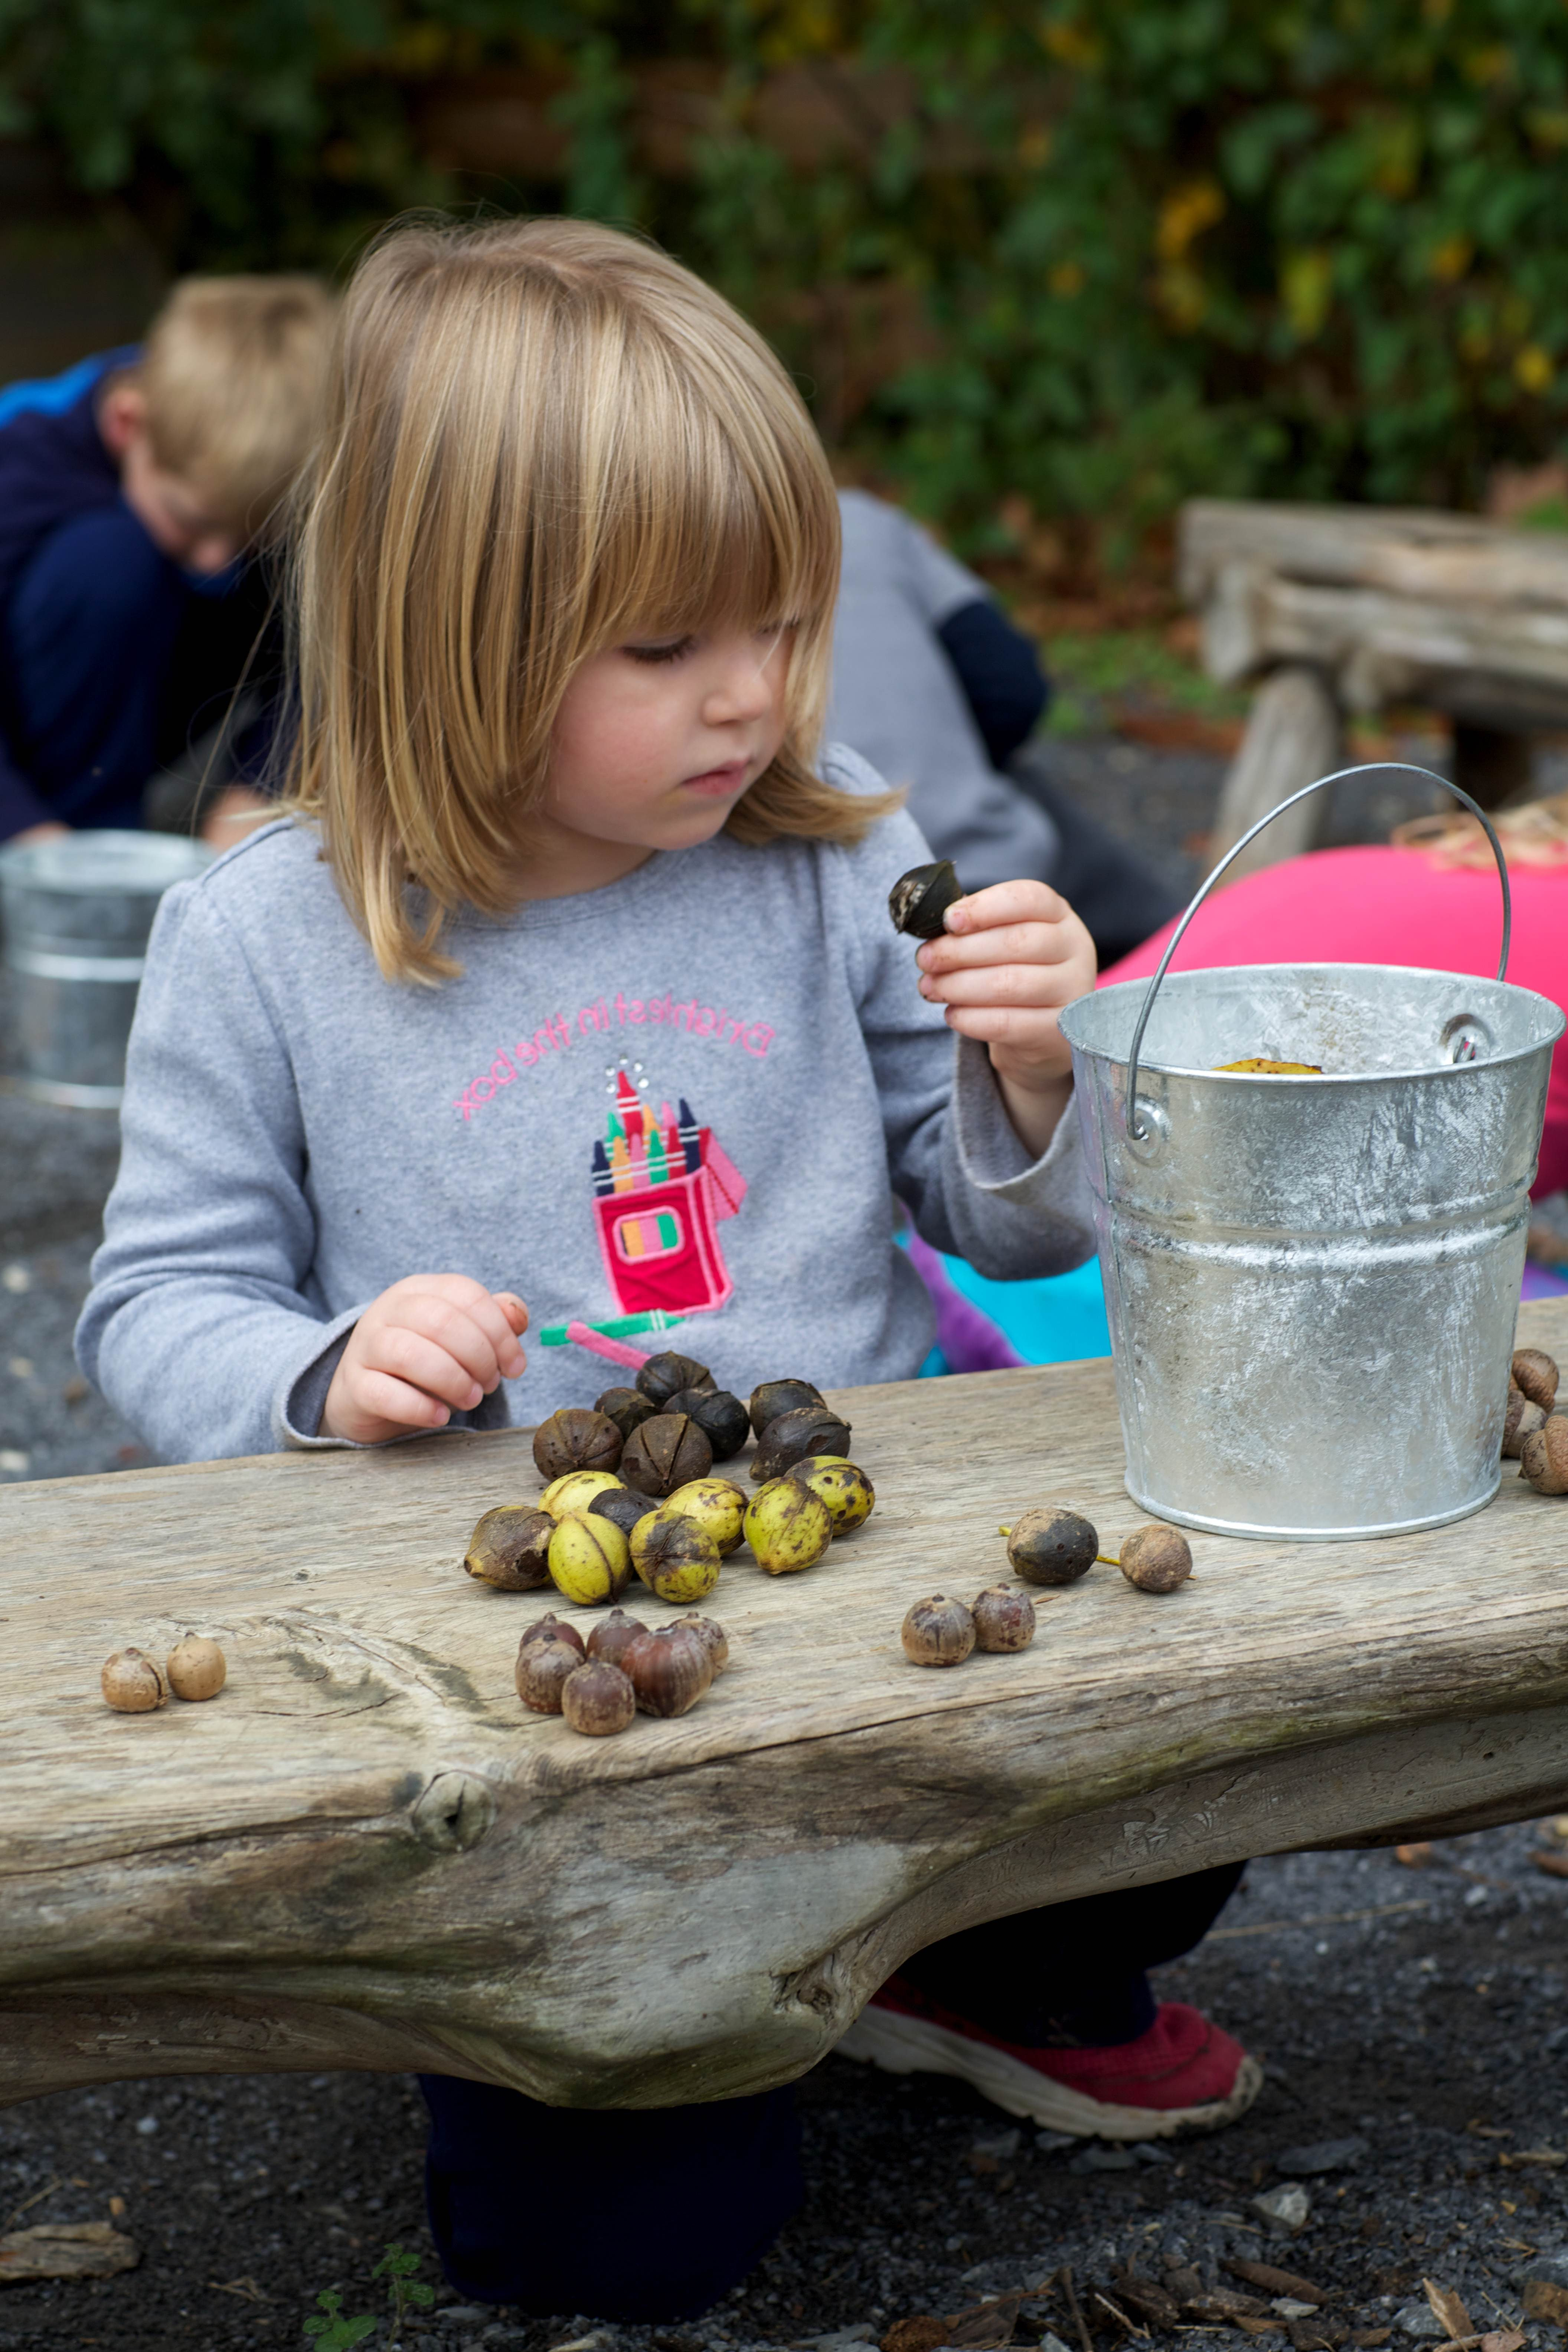 Free photograph; after, gathering, various, nuts, young, girl, examines, hickory, nut